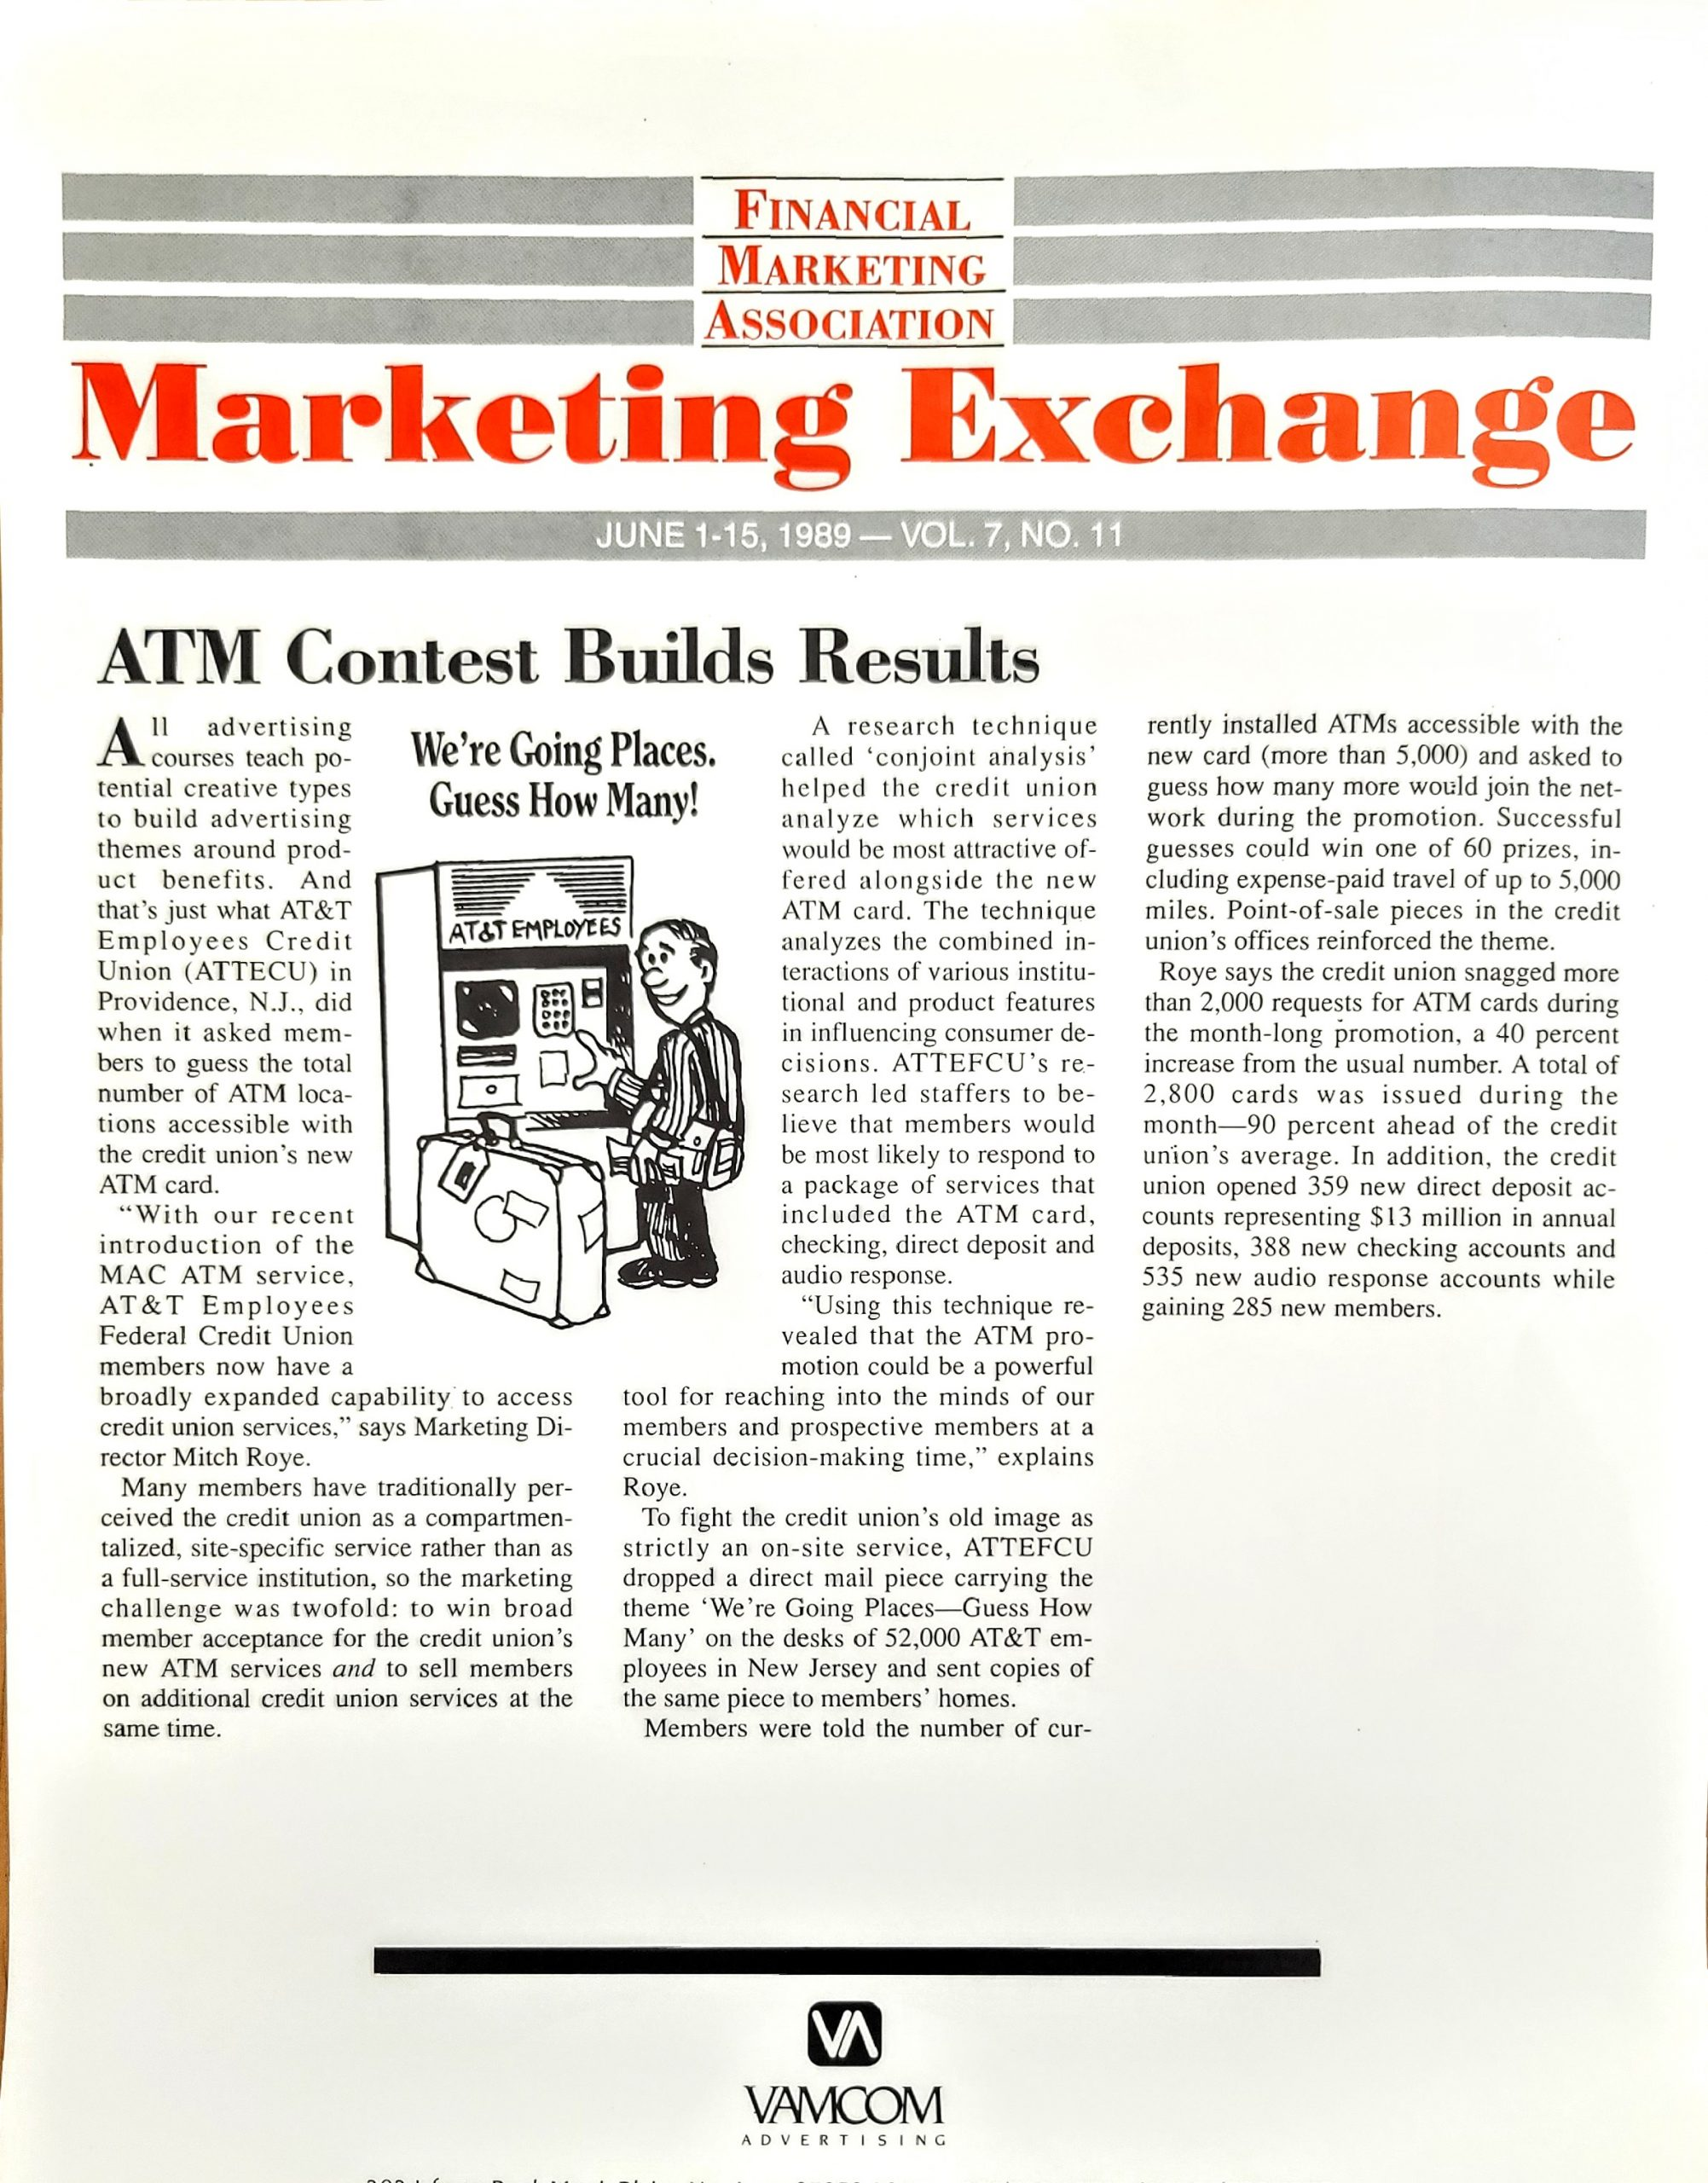 at&t employees credit union_article_financial makt assoc_2